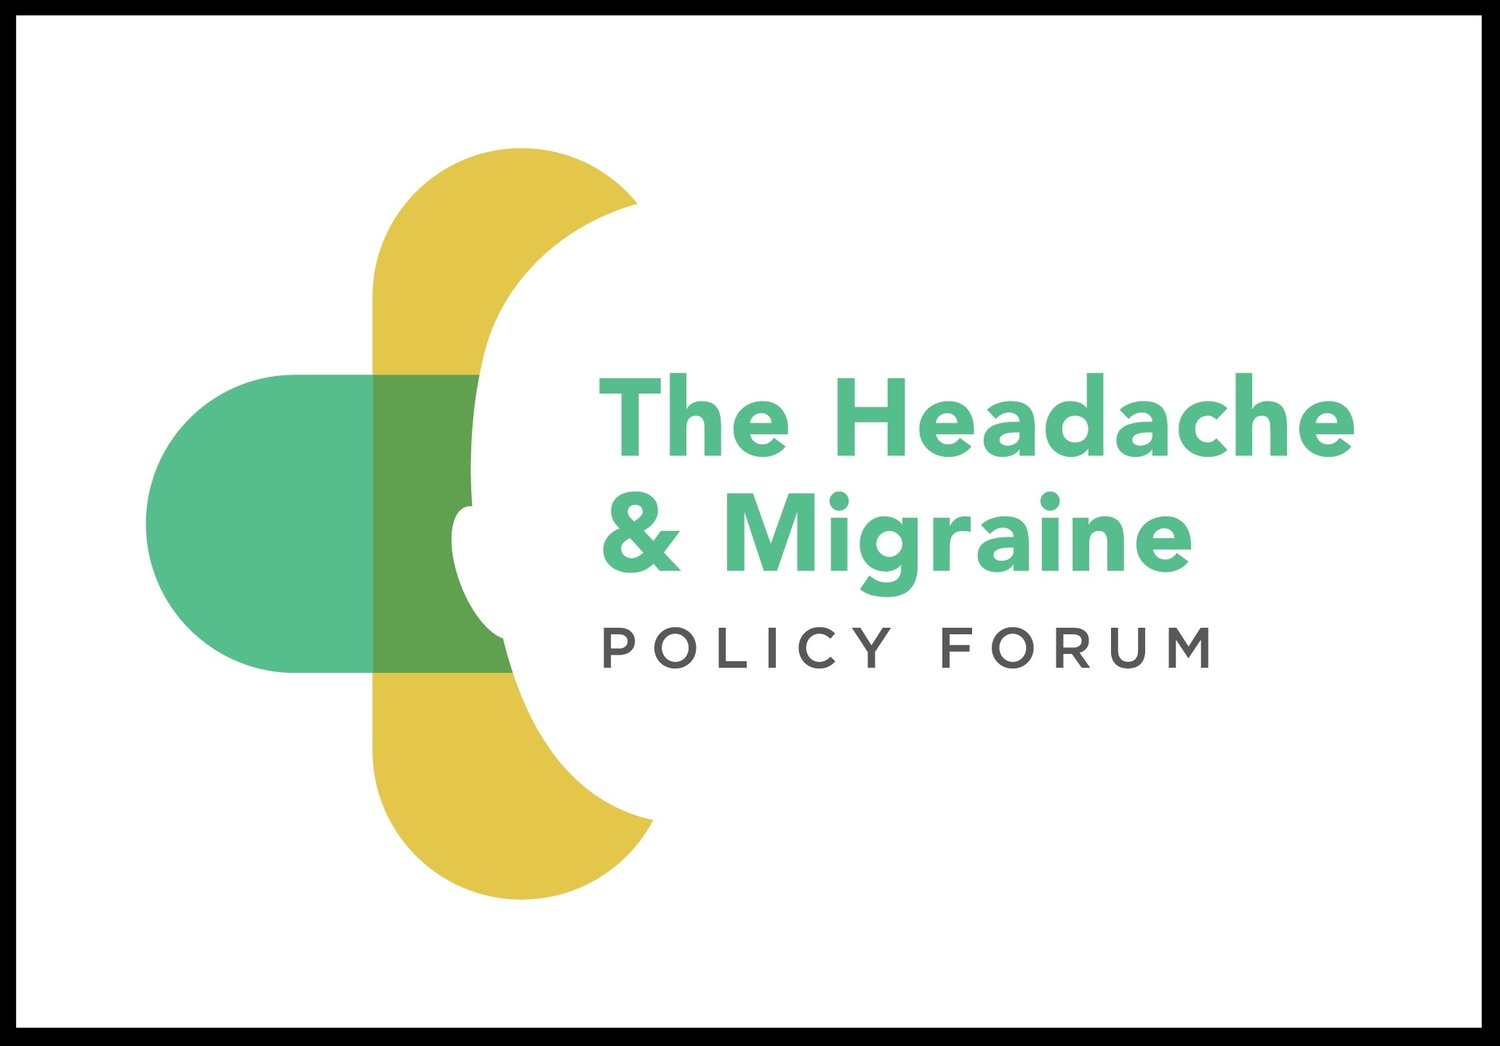 Headache and Migraine Policy Forum